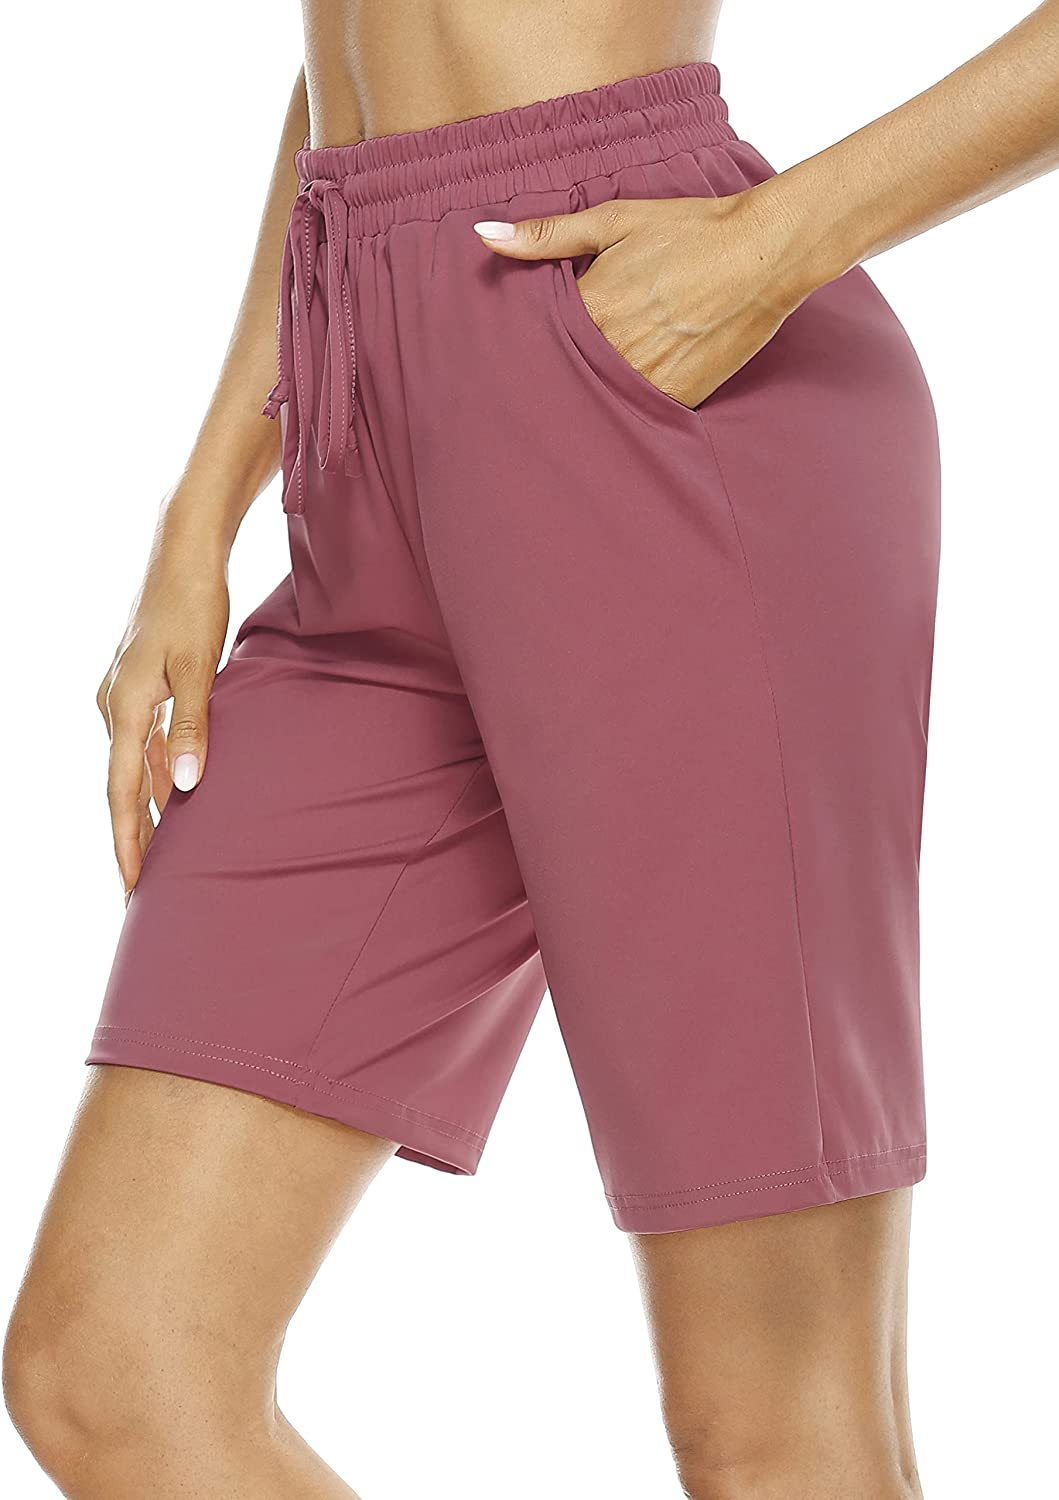 CHICHO Women's Bermuda Shorts Lounge Running Athletic Workout Stretch Long Short with Pockets